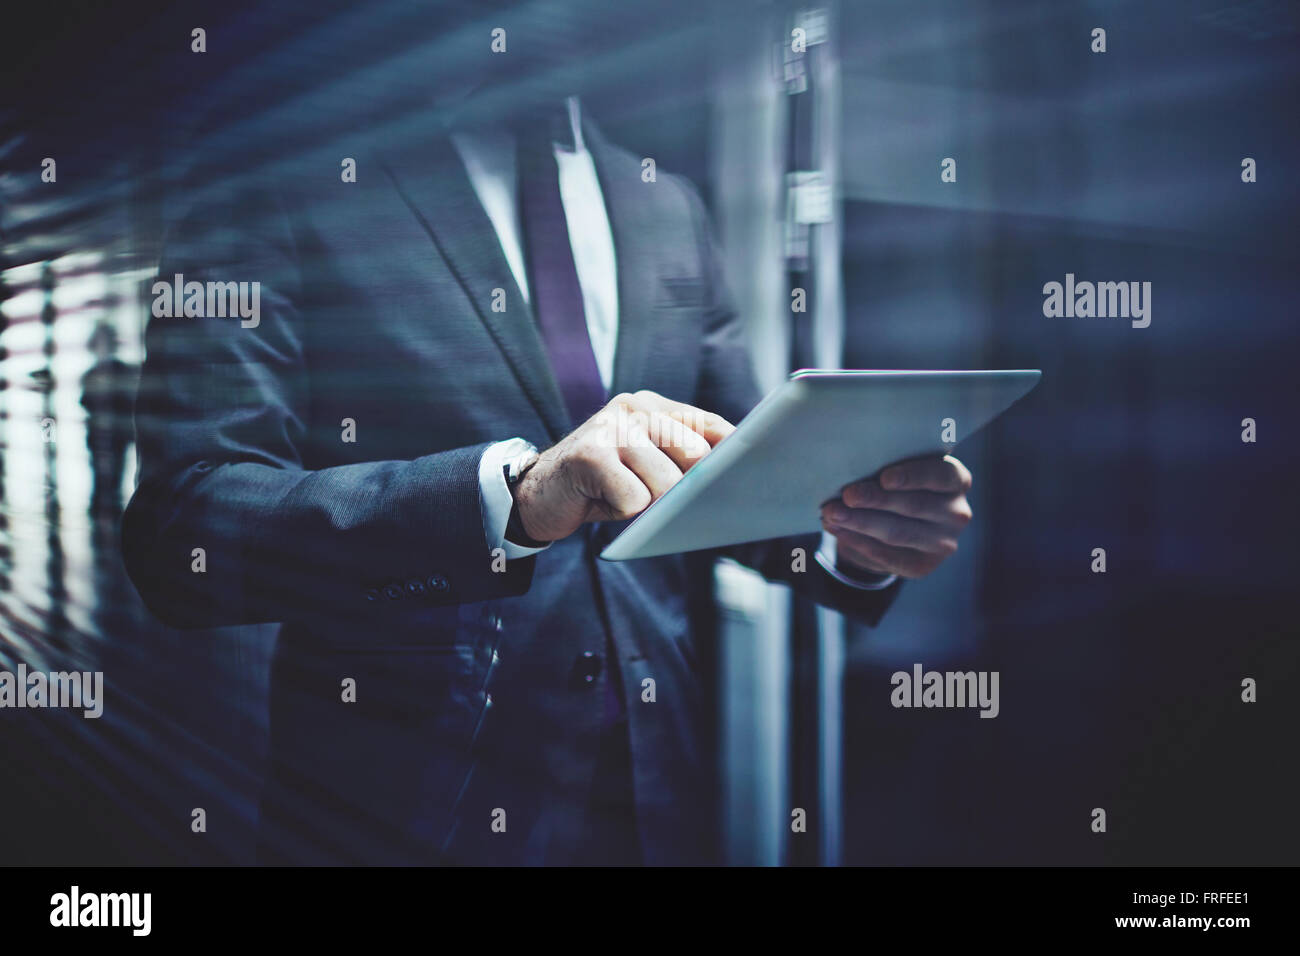 Close-up of businessman with touchpad networking in corridor of office building - Stock Image